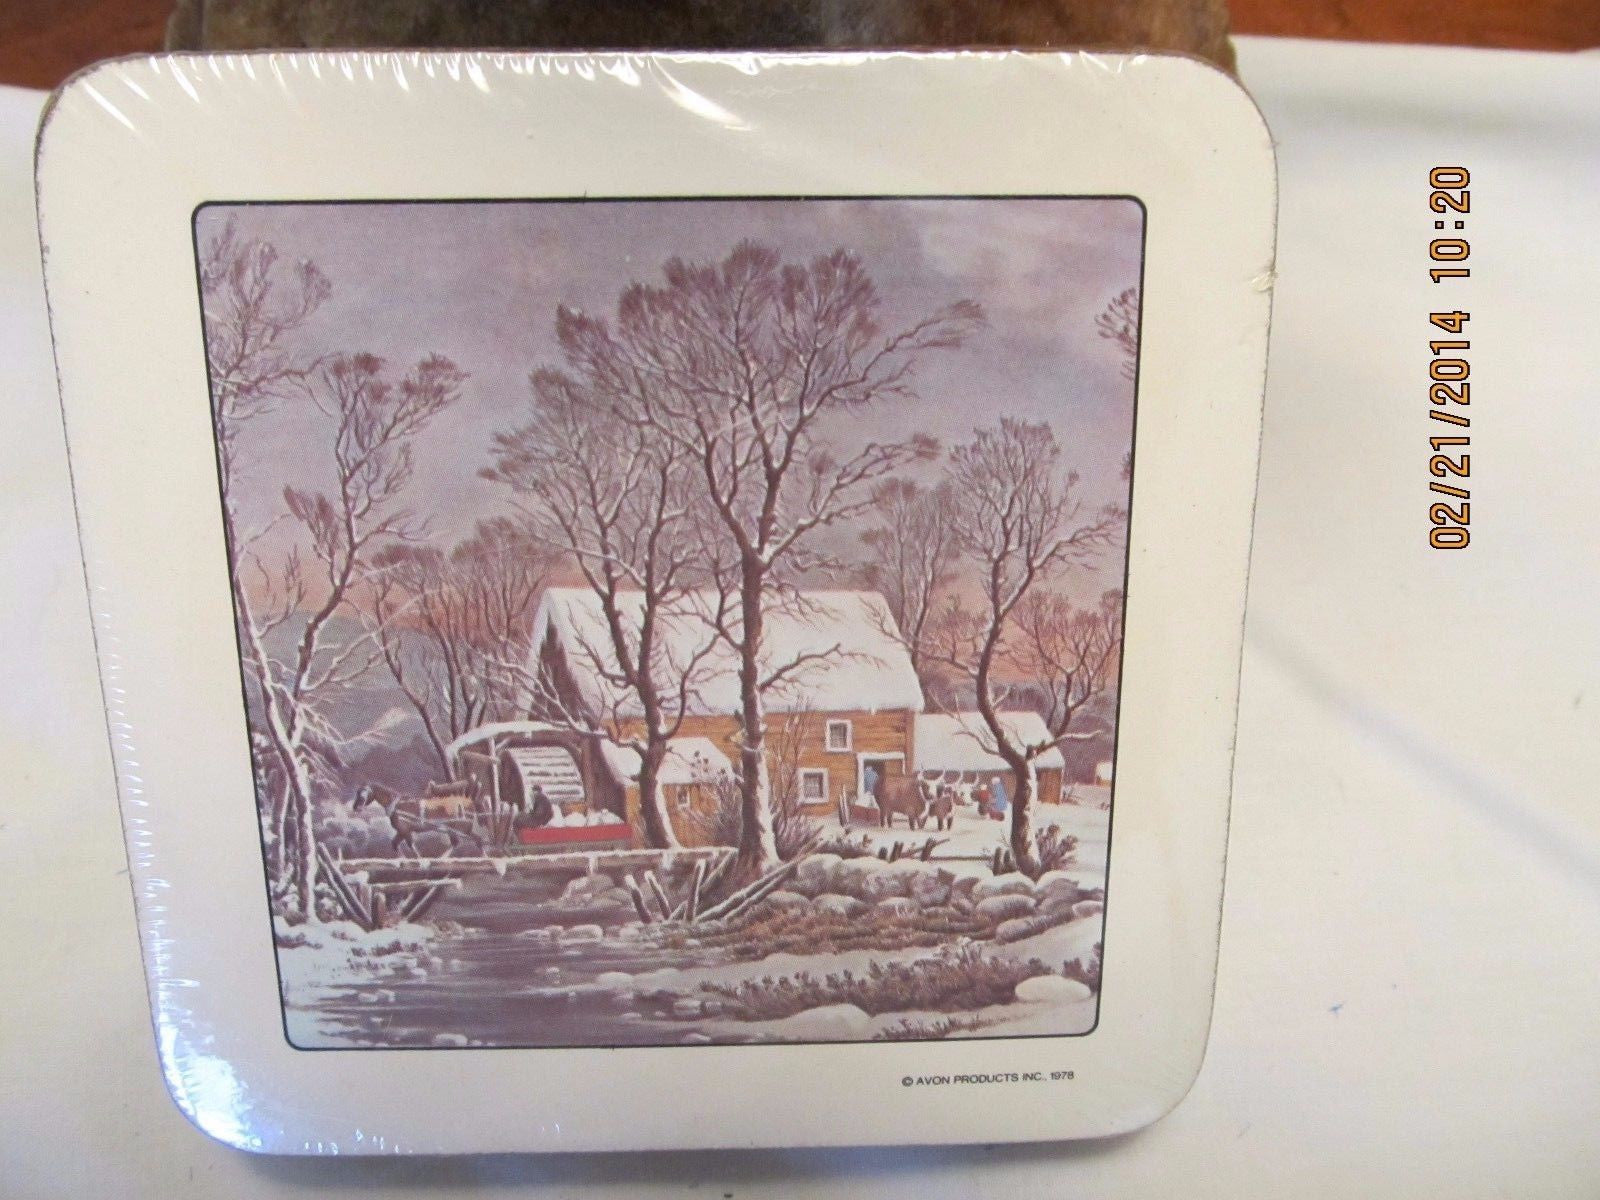 STILL IN THE PACKAGE VINTAGE AVON COASTERS - Andres James Vintage Boutique